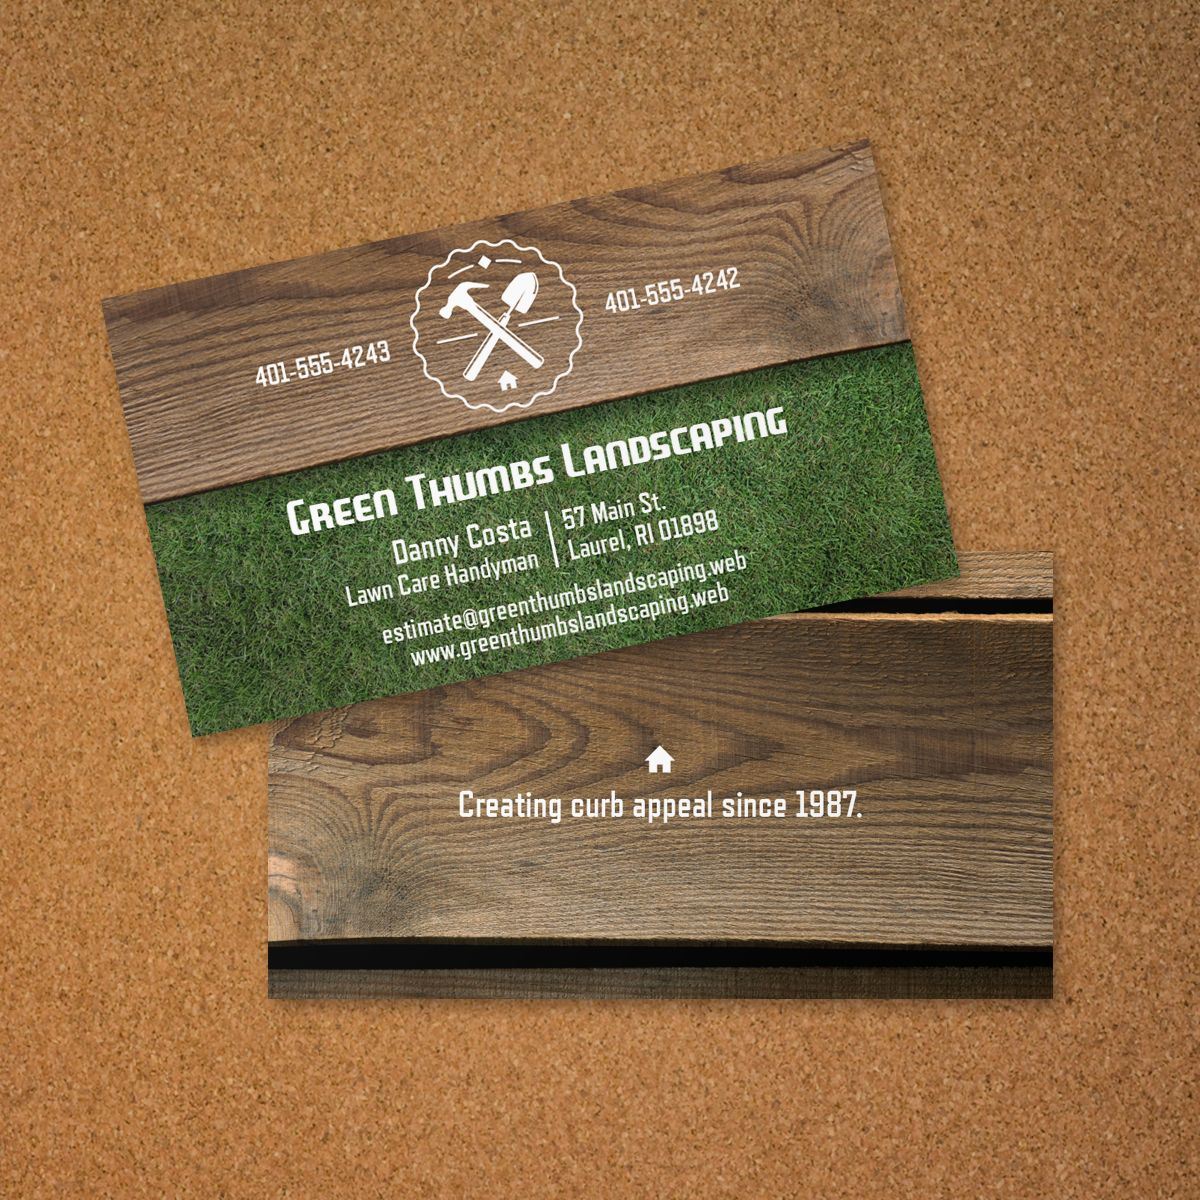 Landscaping business card vistaprint business card for Landscaping business